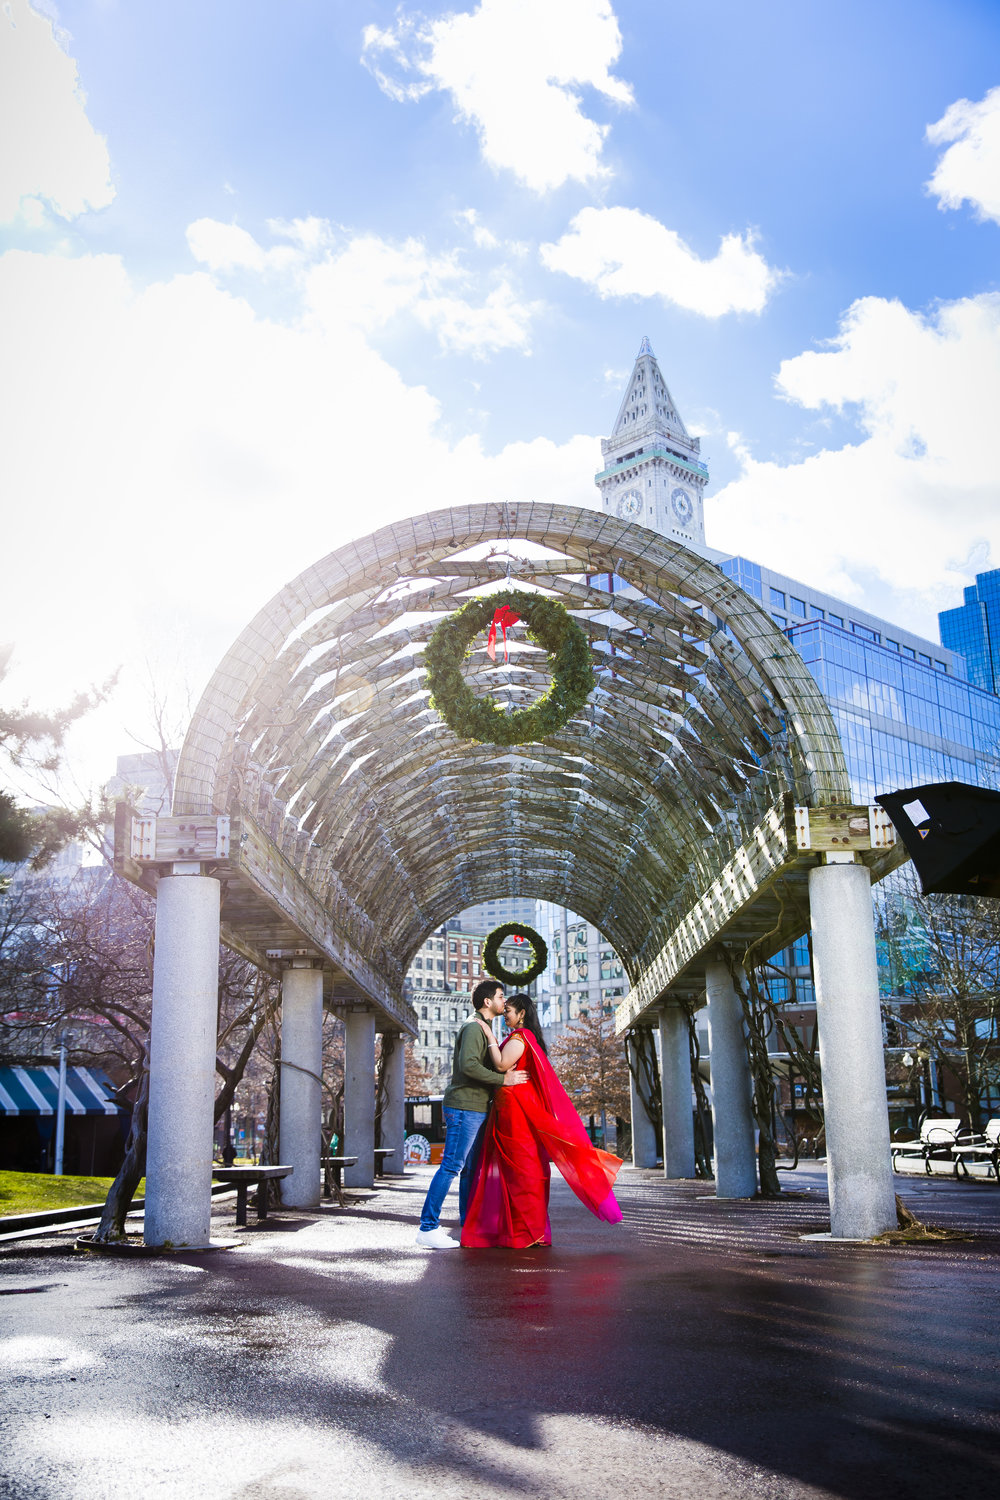 314A0852 Giovanni The Photographer Boston Engagment Photography Waterfront - Christopher Columbus Park - Public GardenPhotography School.jpg